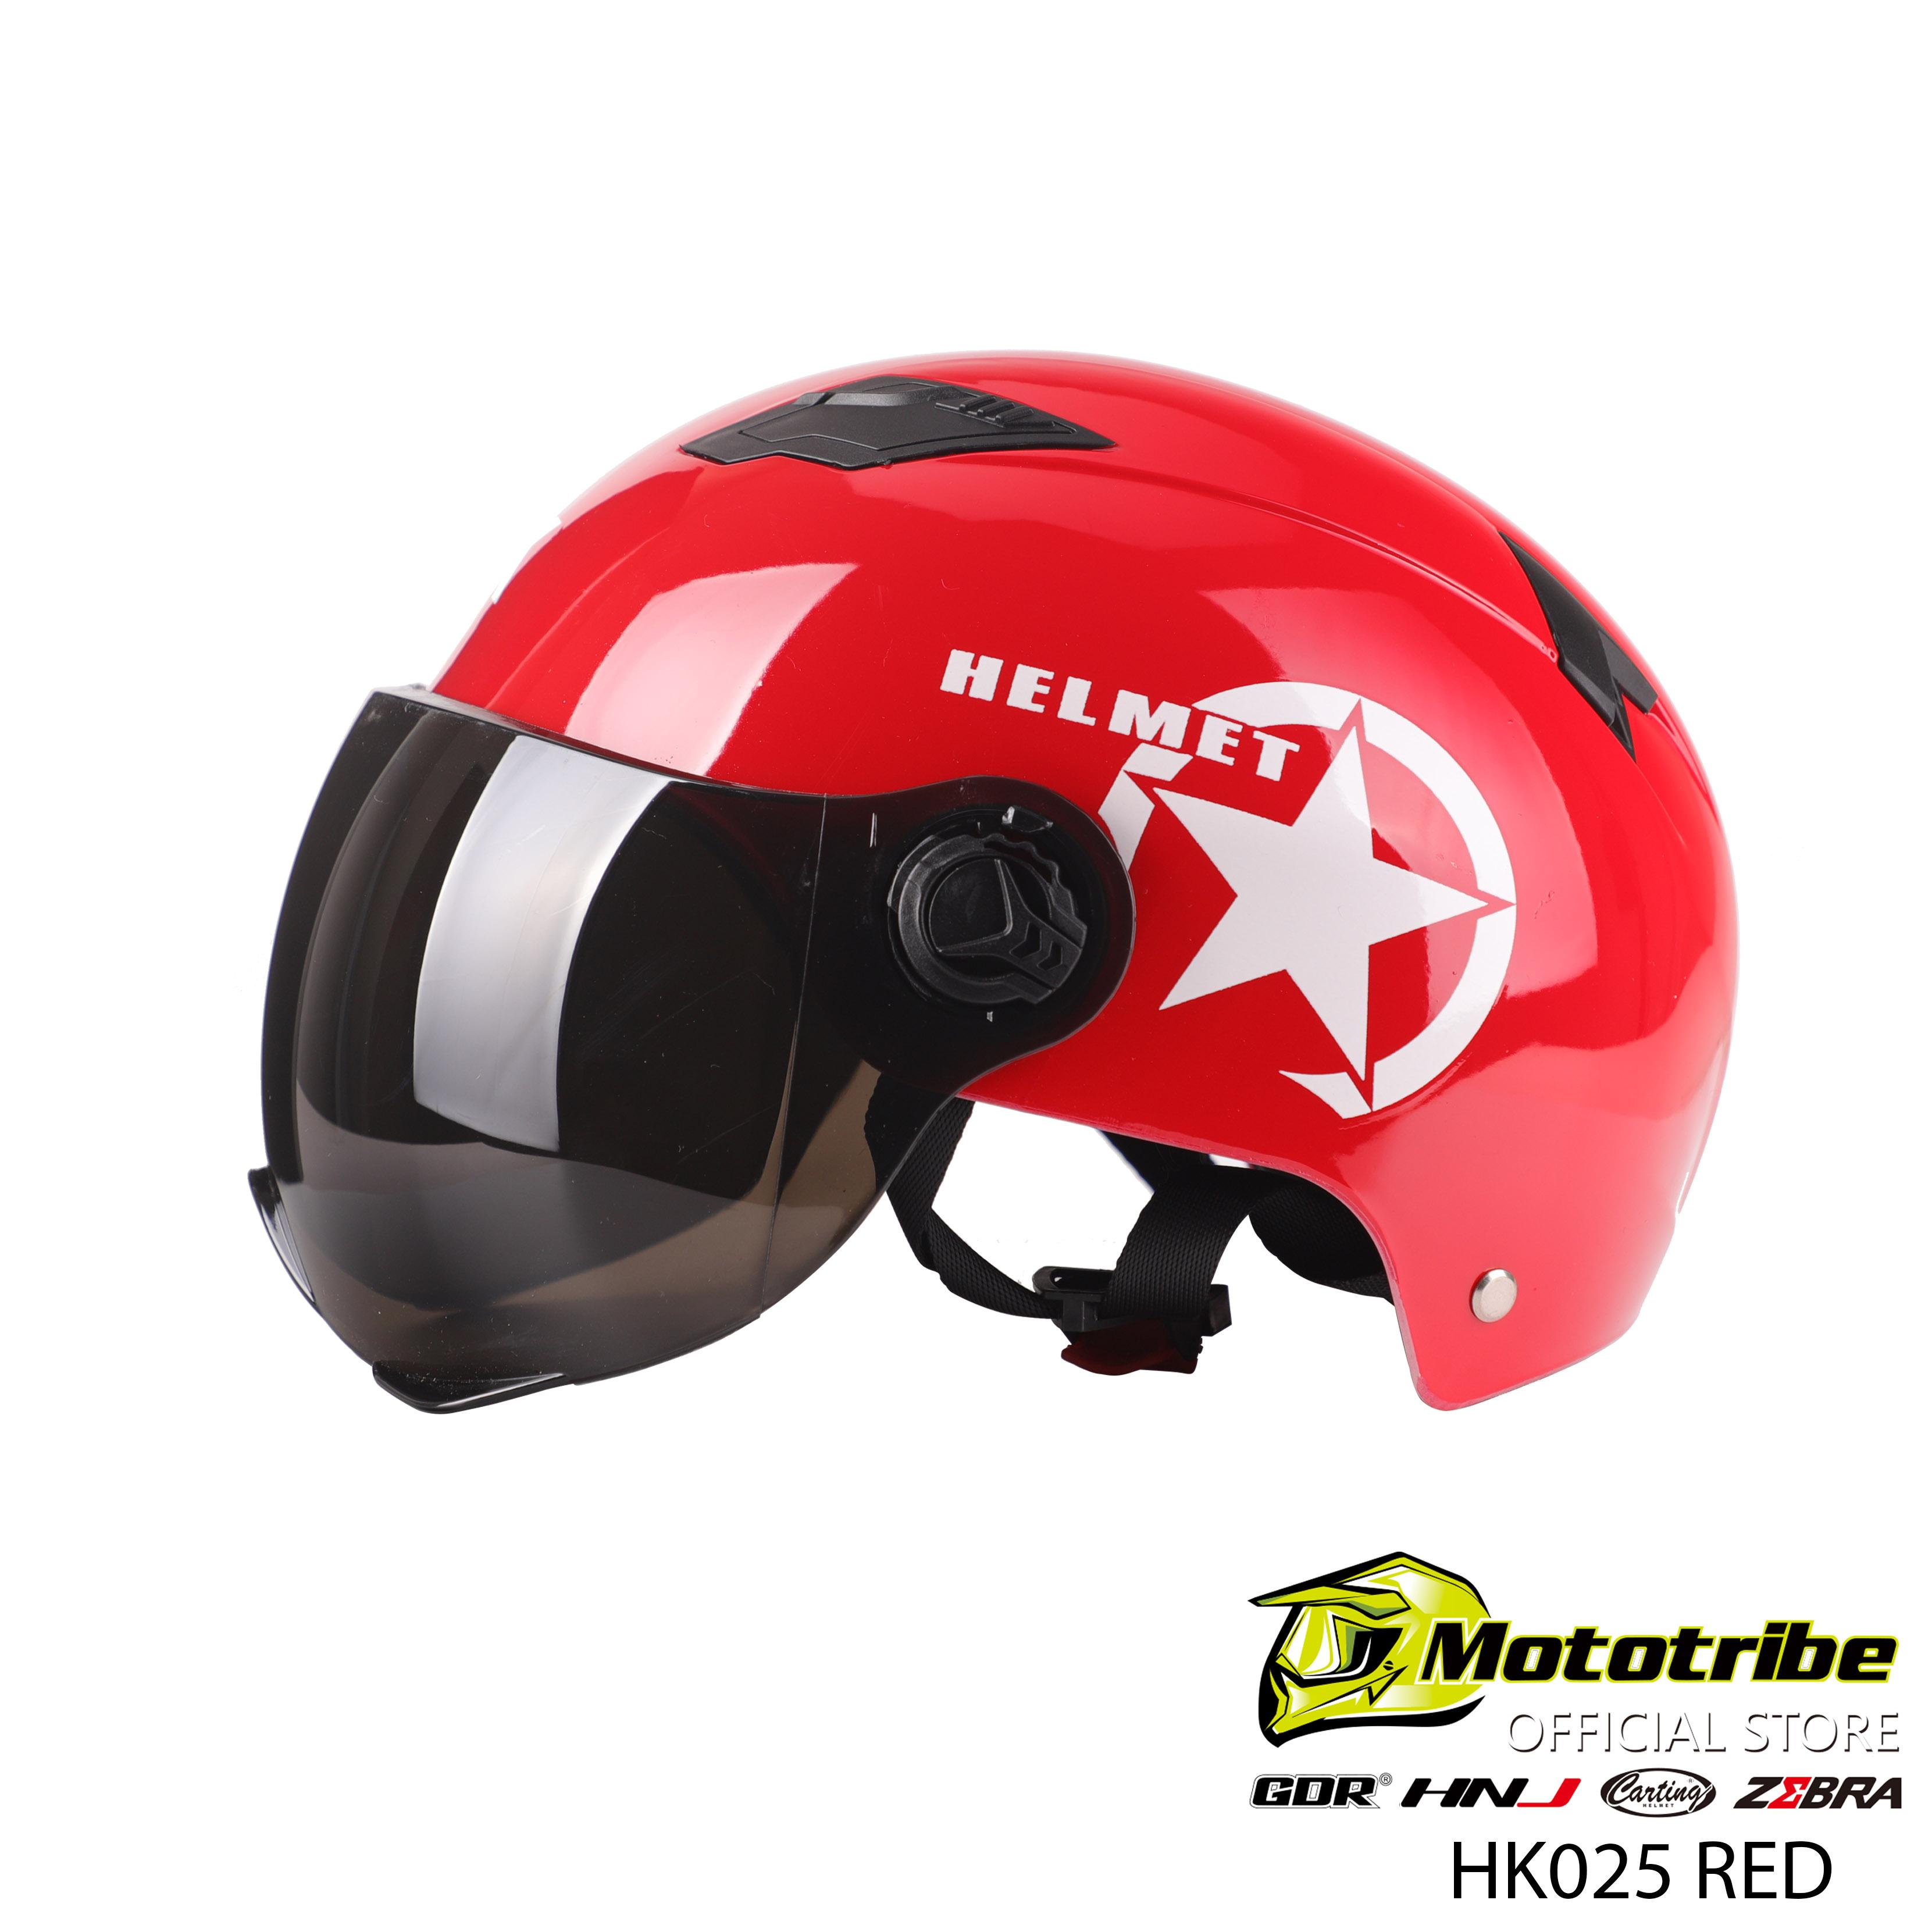 a70f4ce9 Helmets for sale - Motorcycle Helmets Online Deals & Prices in ...